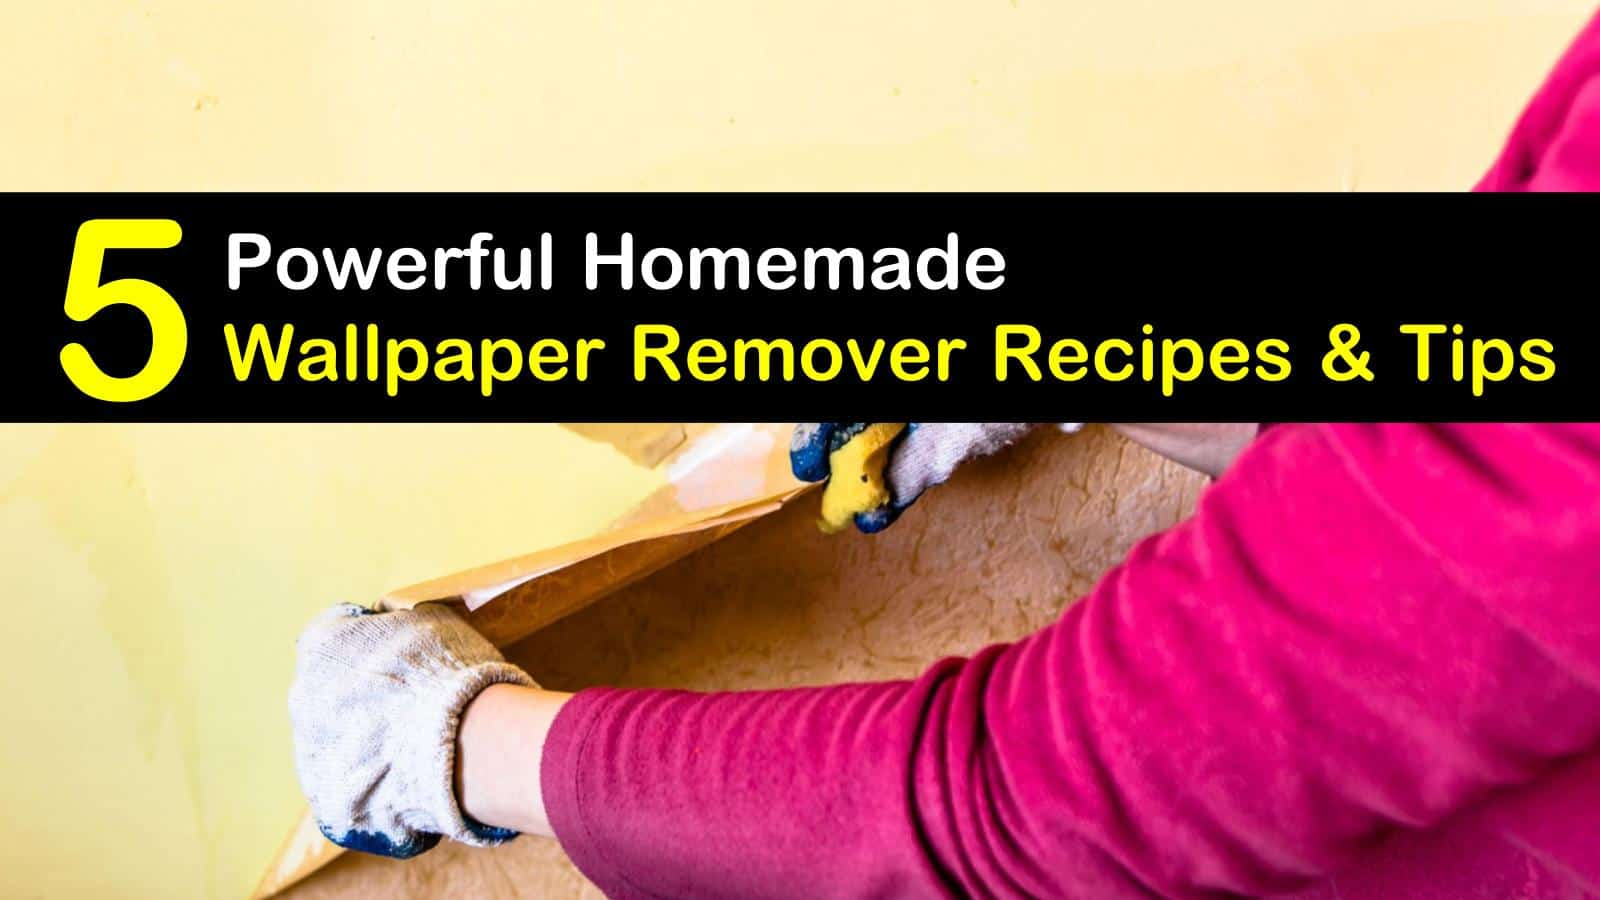 Homemade Wallpaper Remover Recipes 5 Tips For Easily Removing 1600x900